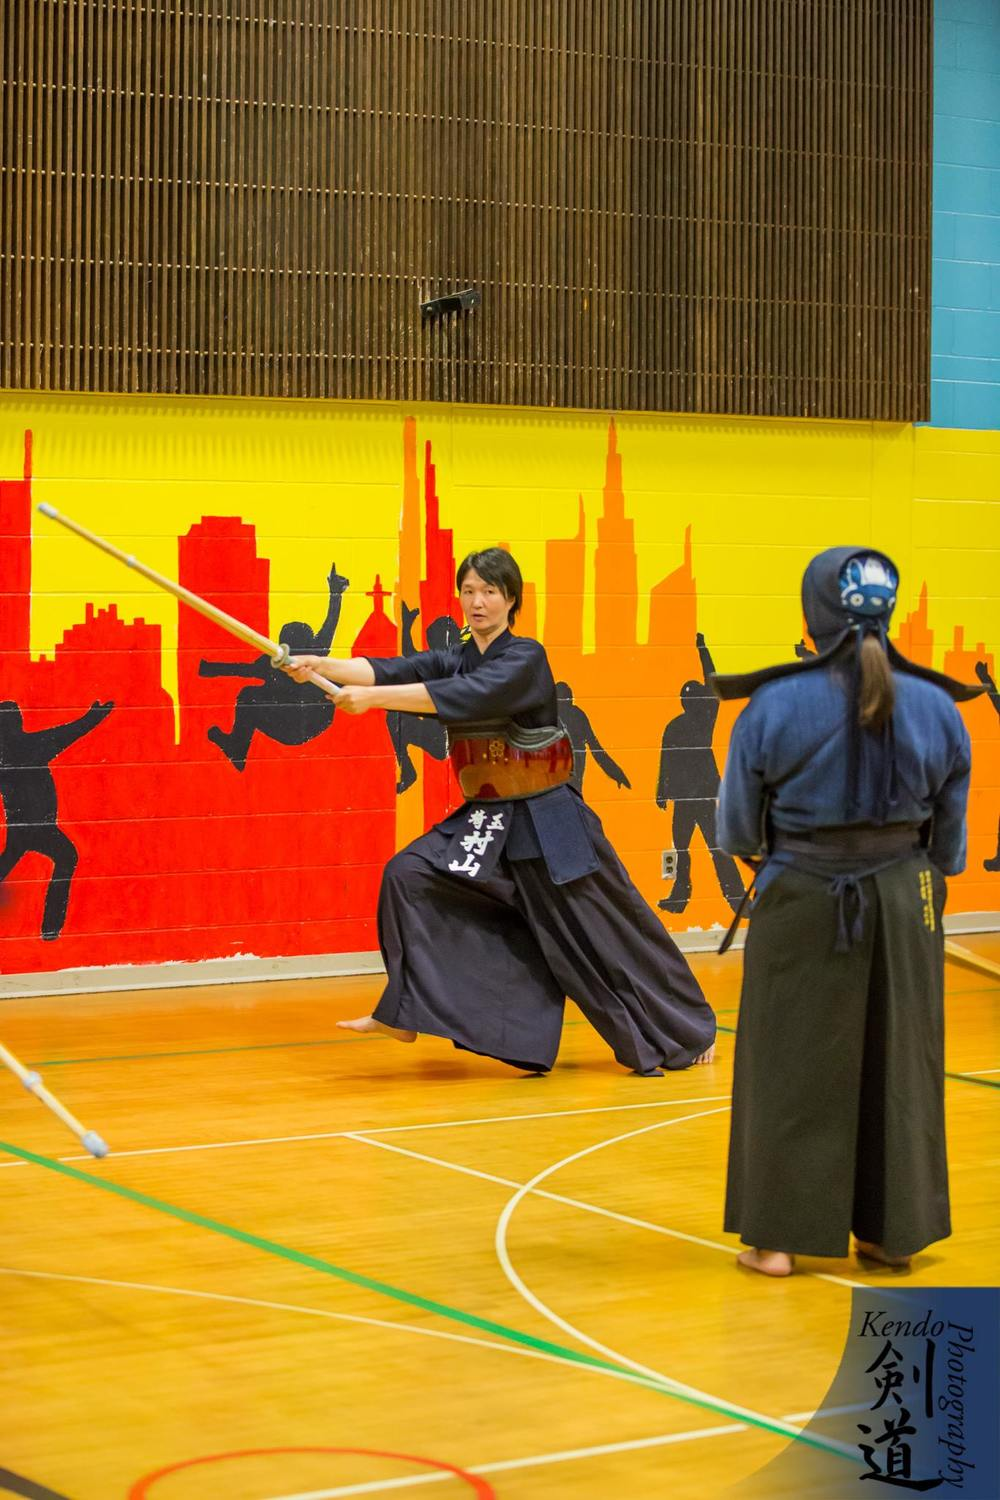 At the seminar: Murayama sensei demonstrates how to strike men.  Photo by event photographer Kendo Photography (Seattle).